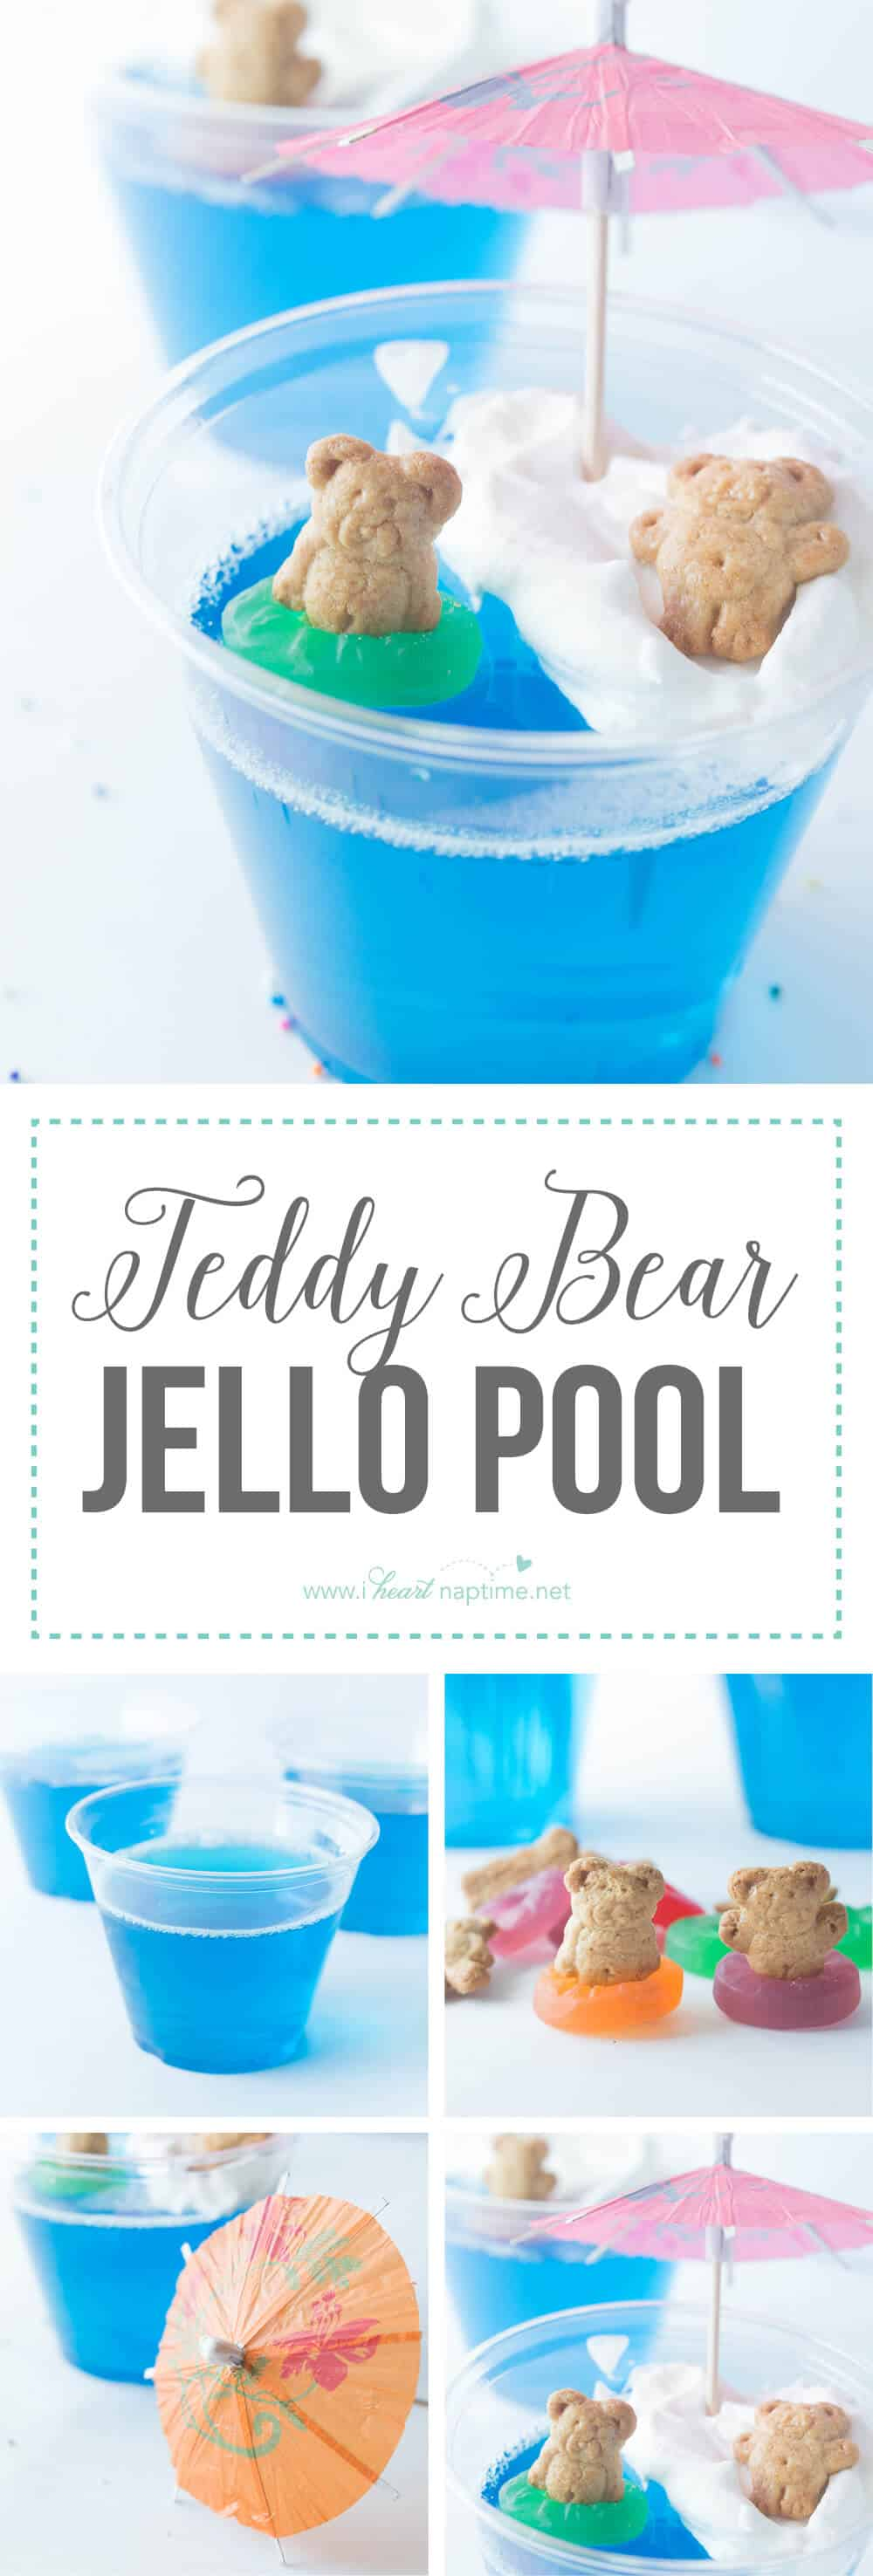 Teddy Bear Jello Pool... these little guys make a great summer treat! Refreshing Jello and a dollop of whipped cream make for a yummy treat everyone will love!